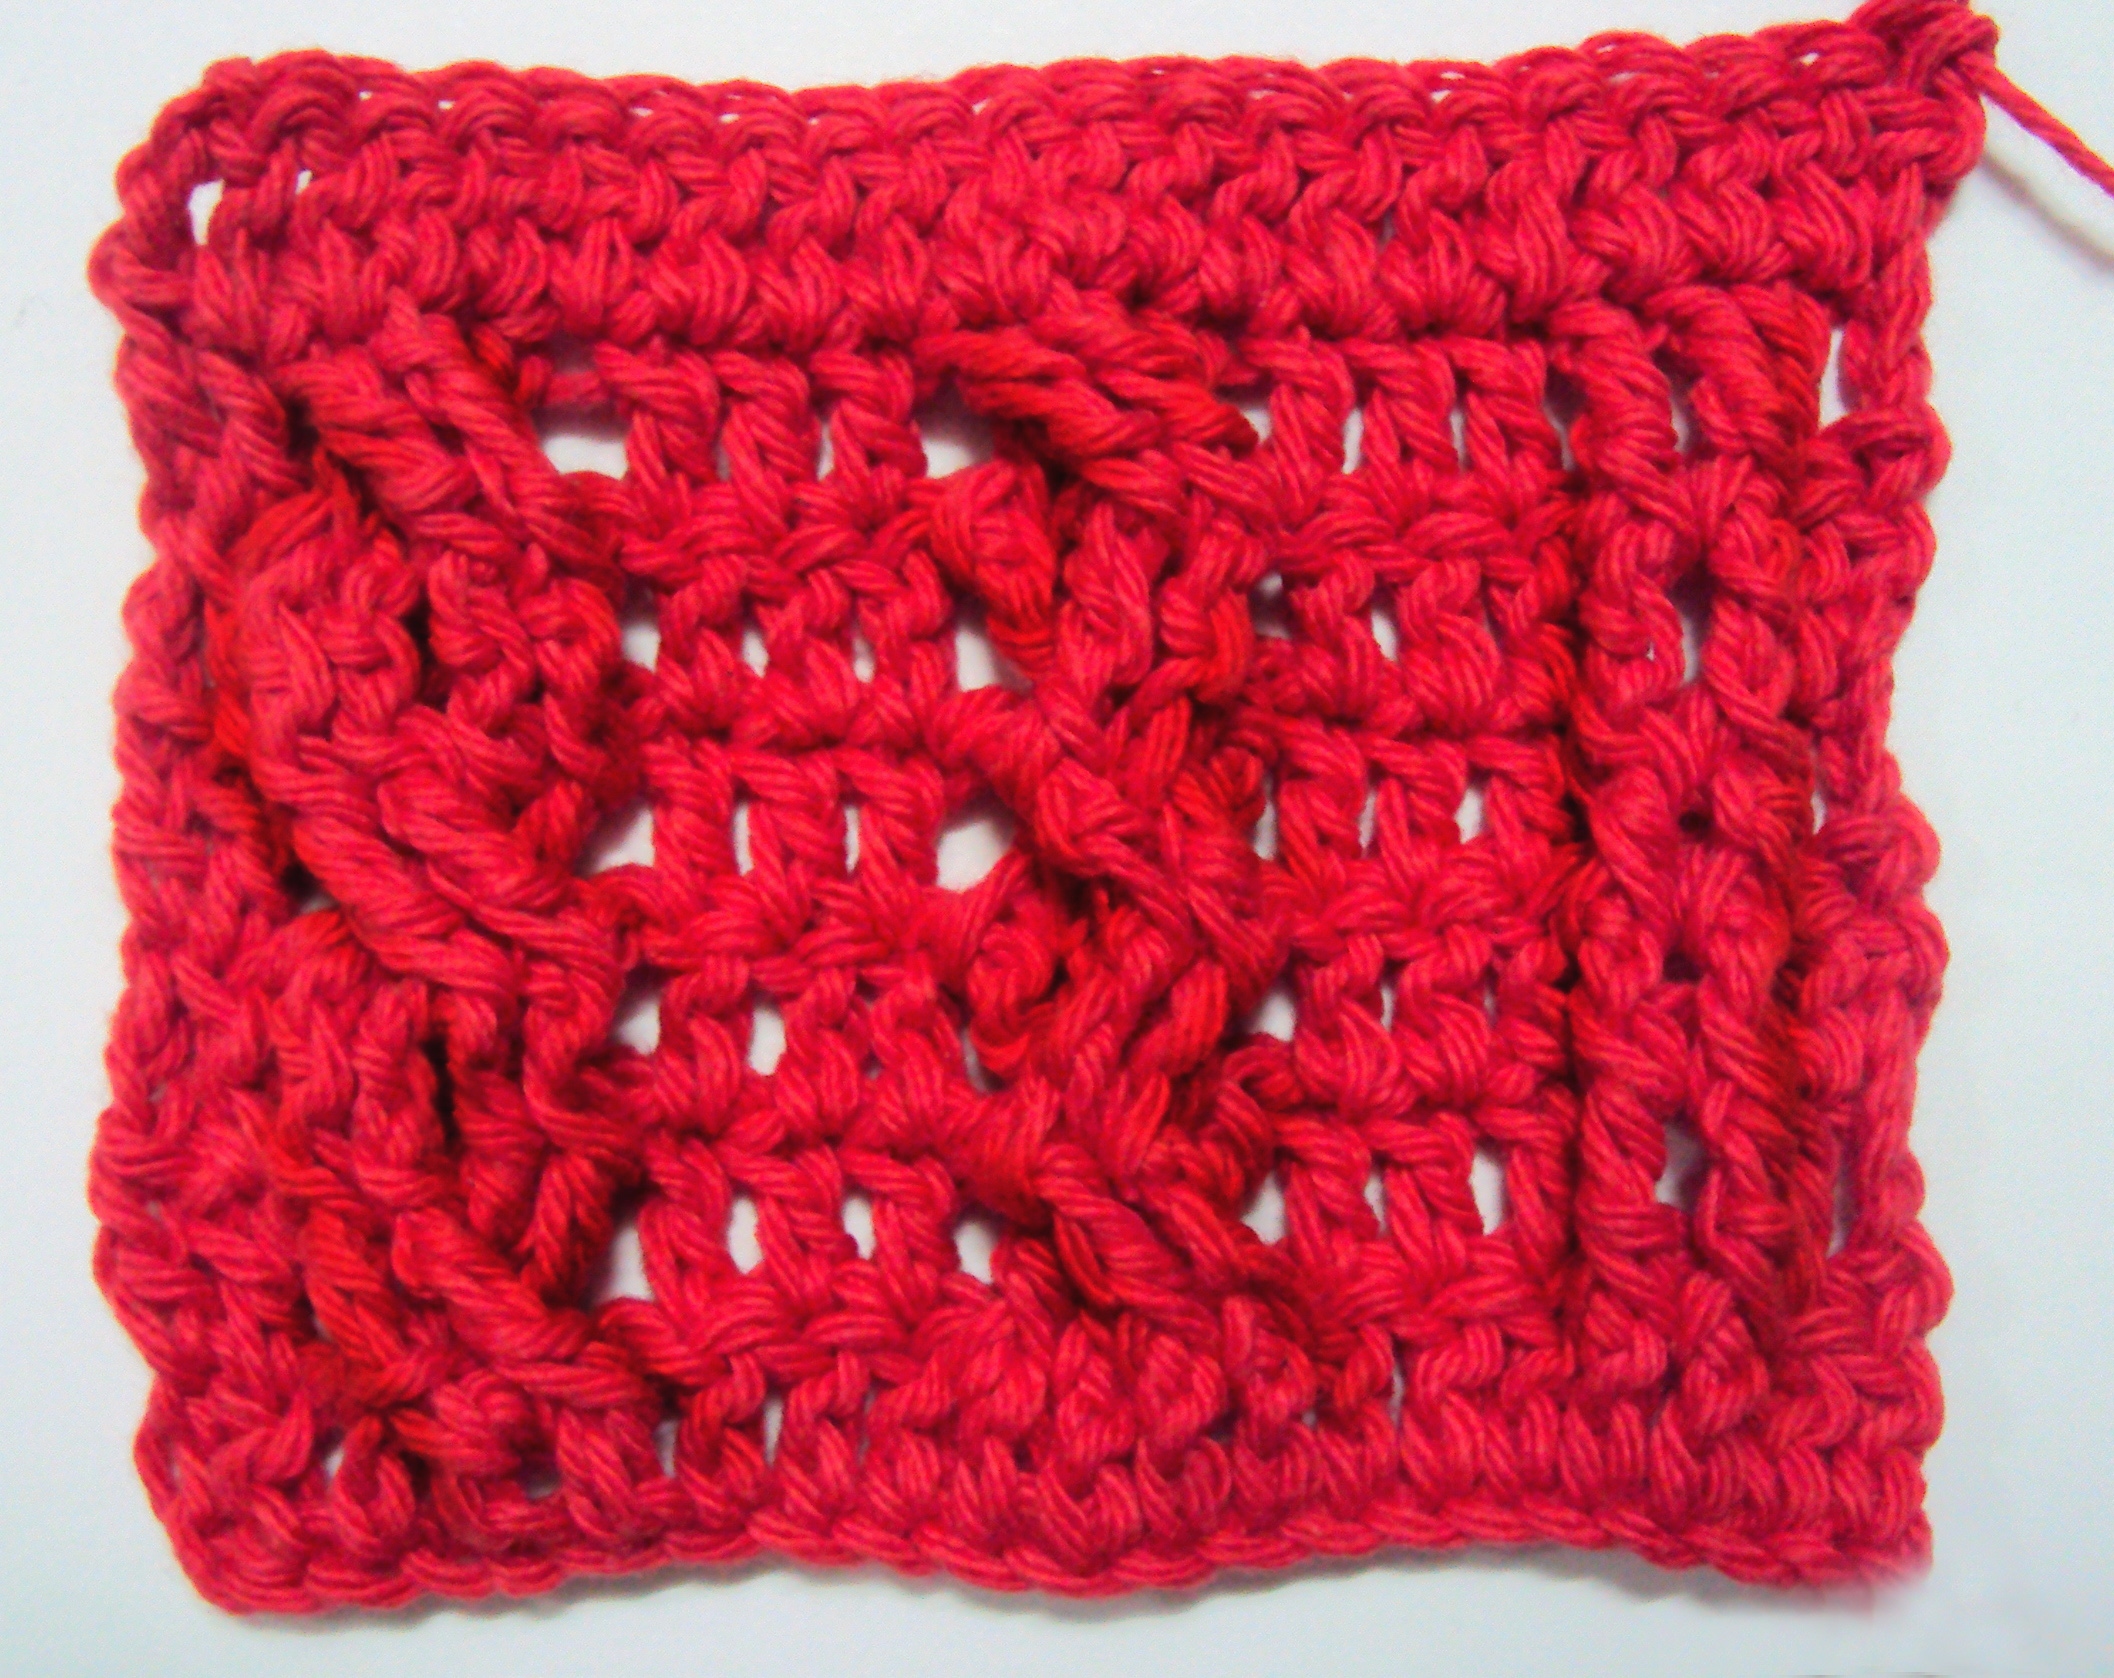 How To Crochet A : Crochet Spot ? Blog Archive ? How to Crochet: Cable Stitches ...